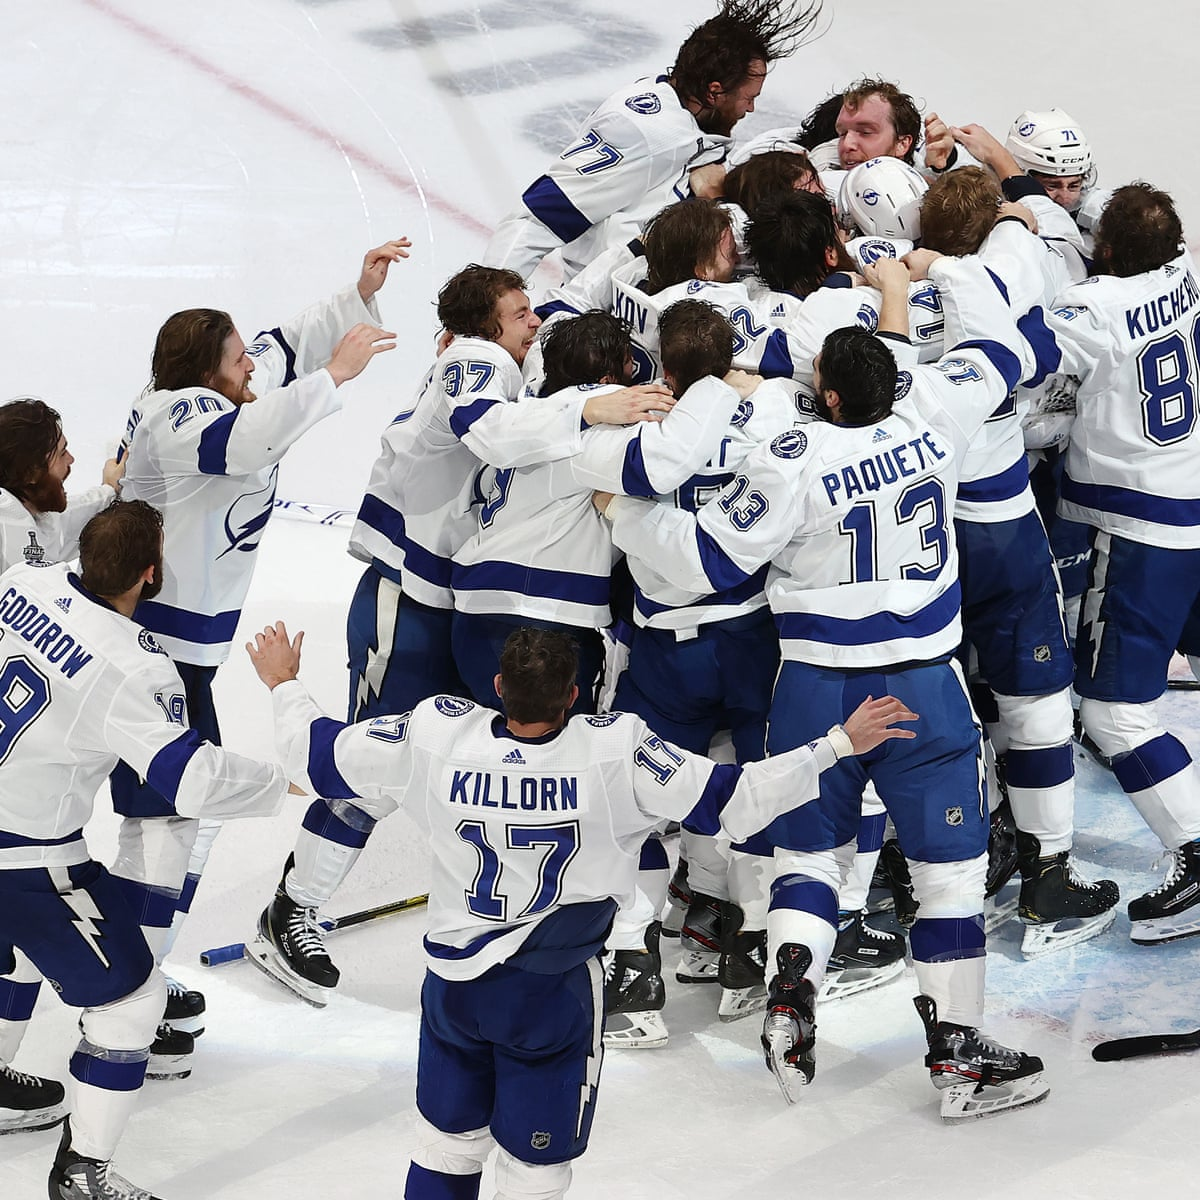 Tampa Bay Lightning Beat Dallas Stars In Game 6 To Claim Stanley Cup Stanley Cup The Guardian